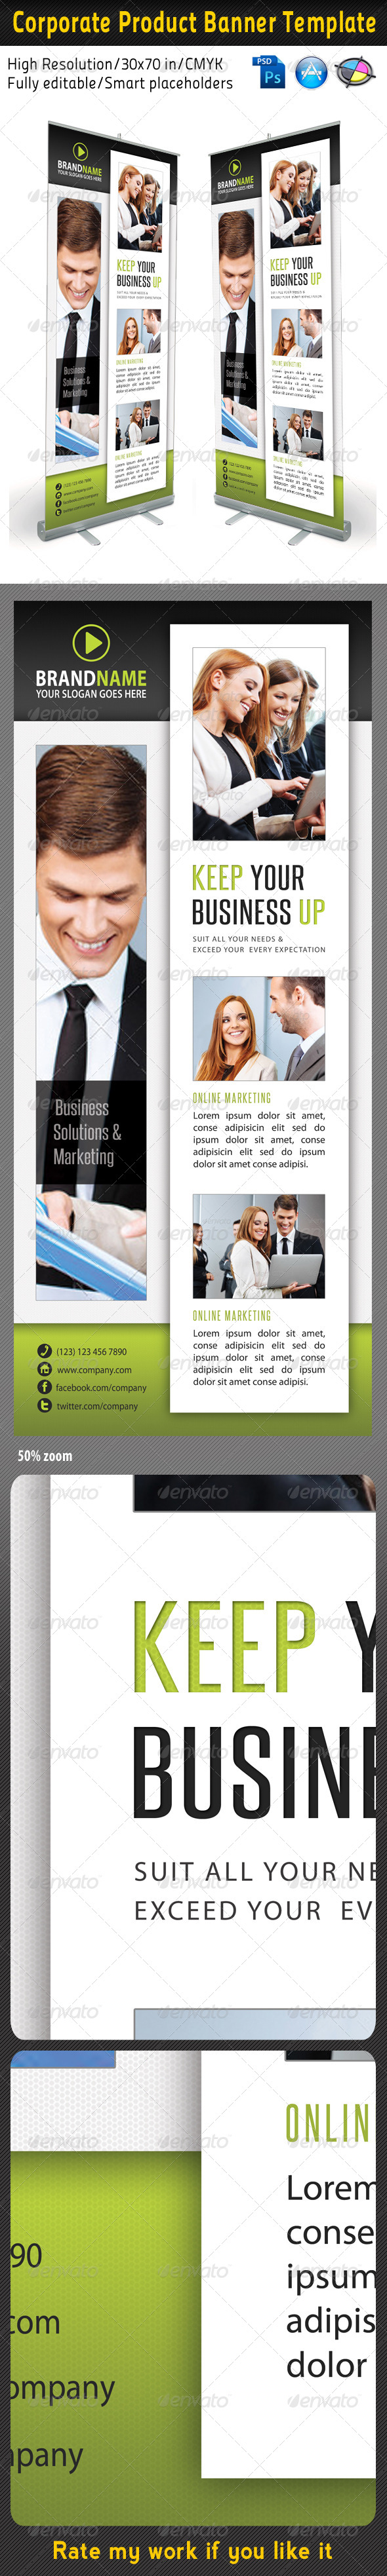 Corporate Multipurpose Banner Template 30 - Signage Print Templates